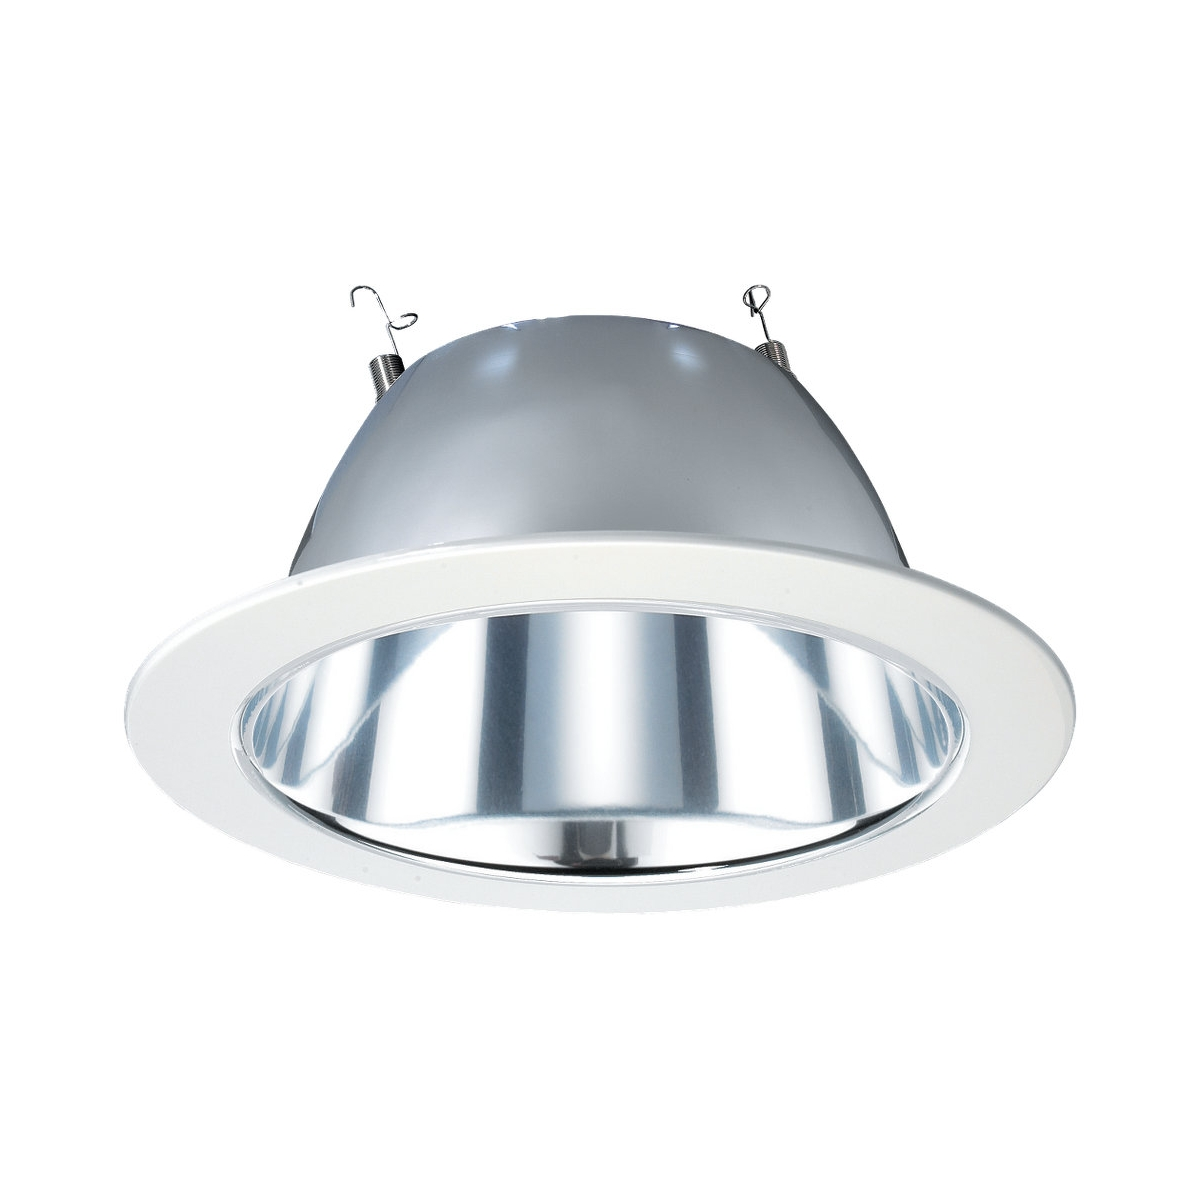 Sea Gull Lighting Signature Recessed Light in Polished Aluminum 1132-22